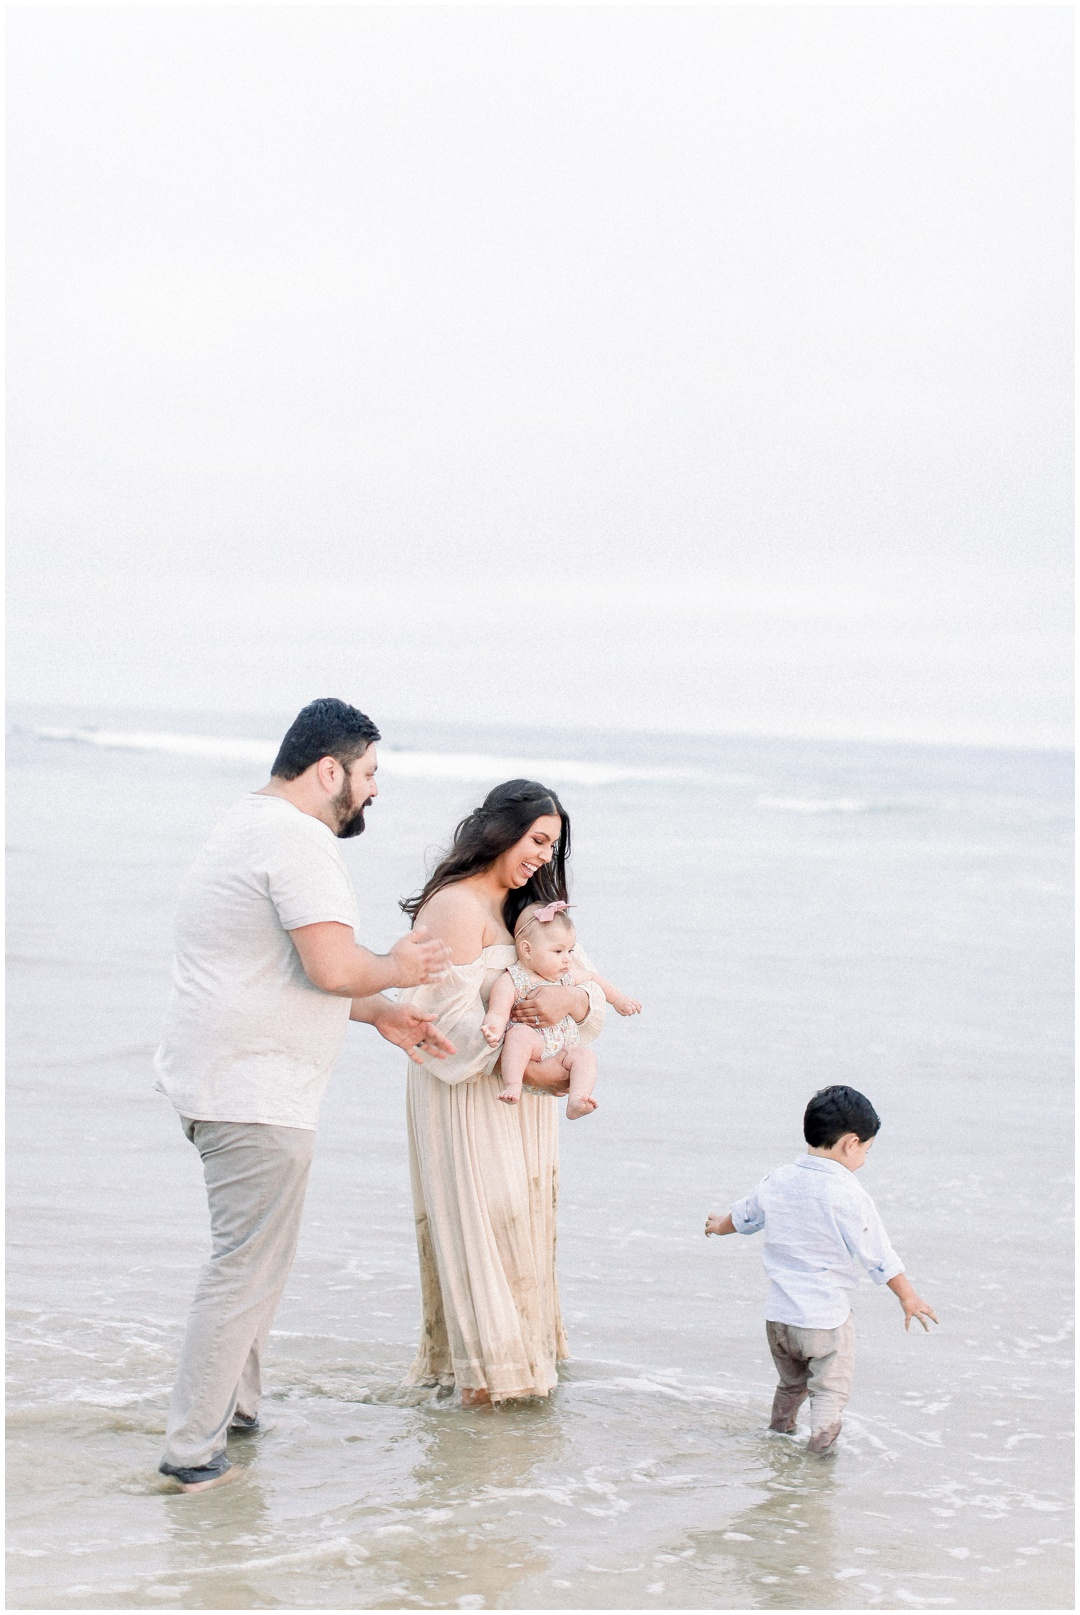 Newport_Beach_Newborn_Light_Airy_Natural_Photographer_Newport_Beach_Photographer_Orange_County_Family_Photographer_Cori_Kleckner_Photography_Huntington_Beach_Photographer_Family_OC_Newborn_Natalie_Nunez_Thomas_Nunez_Natalie_Roca_Rosh_Nunez_Family_3583.jpg